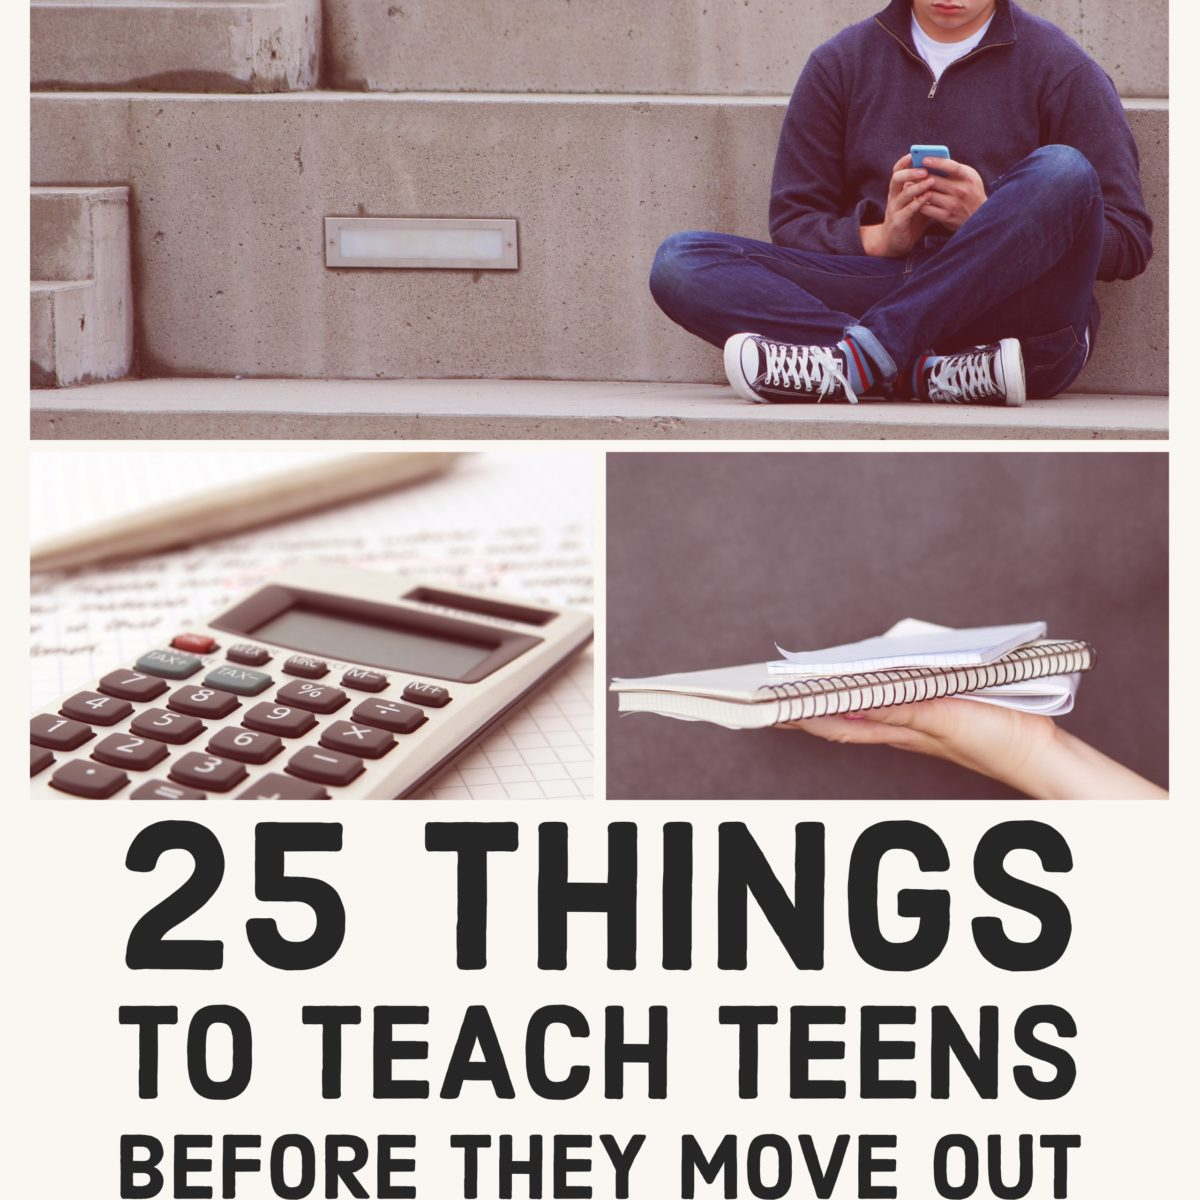 The Art Of Homemaking: 25 Things To Teach Teens Before